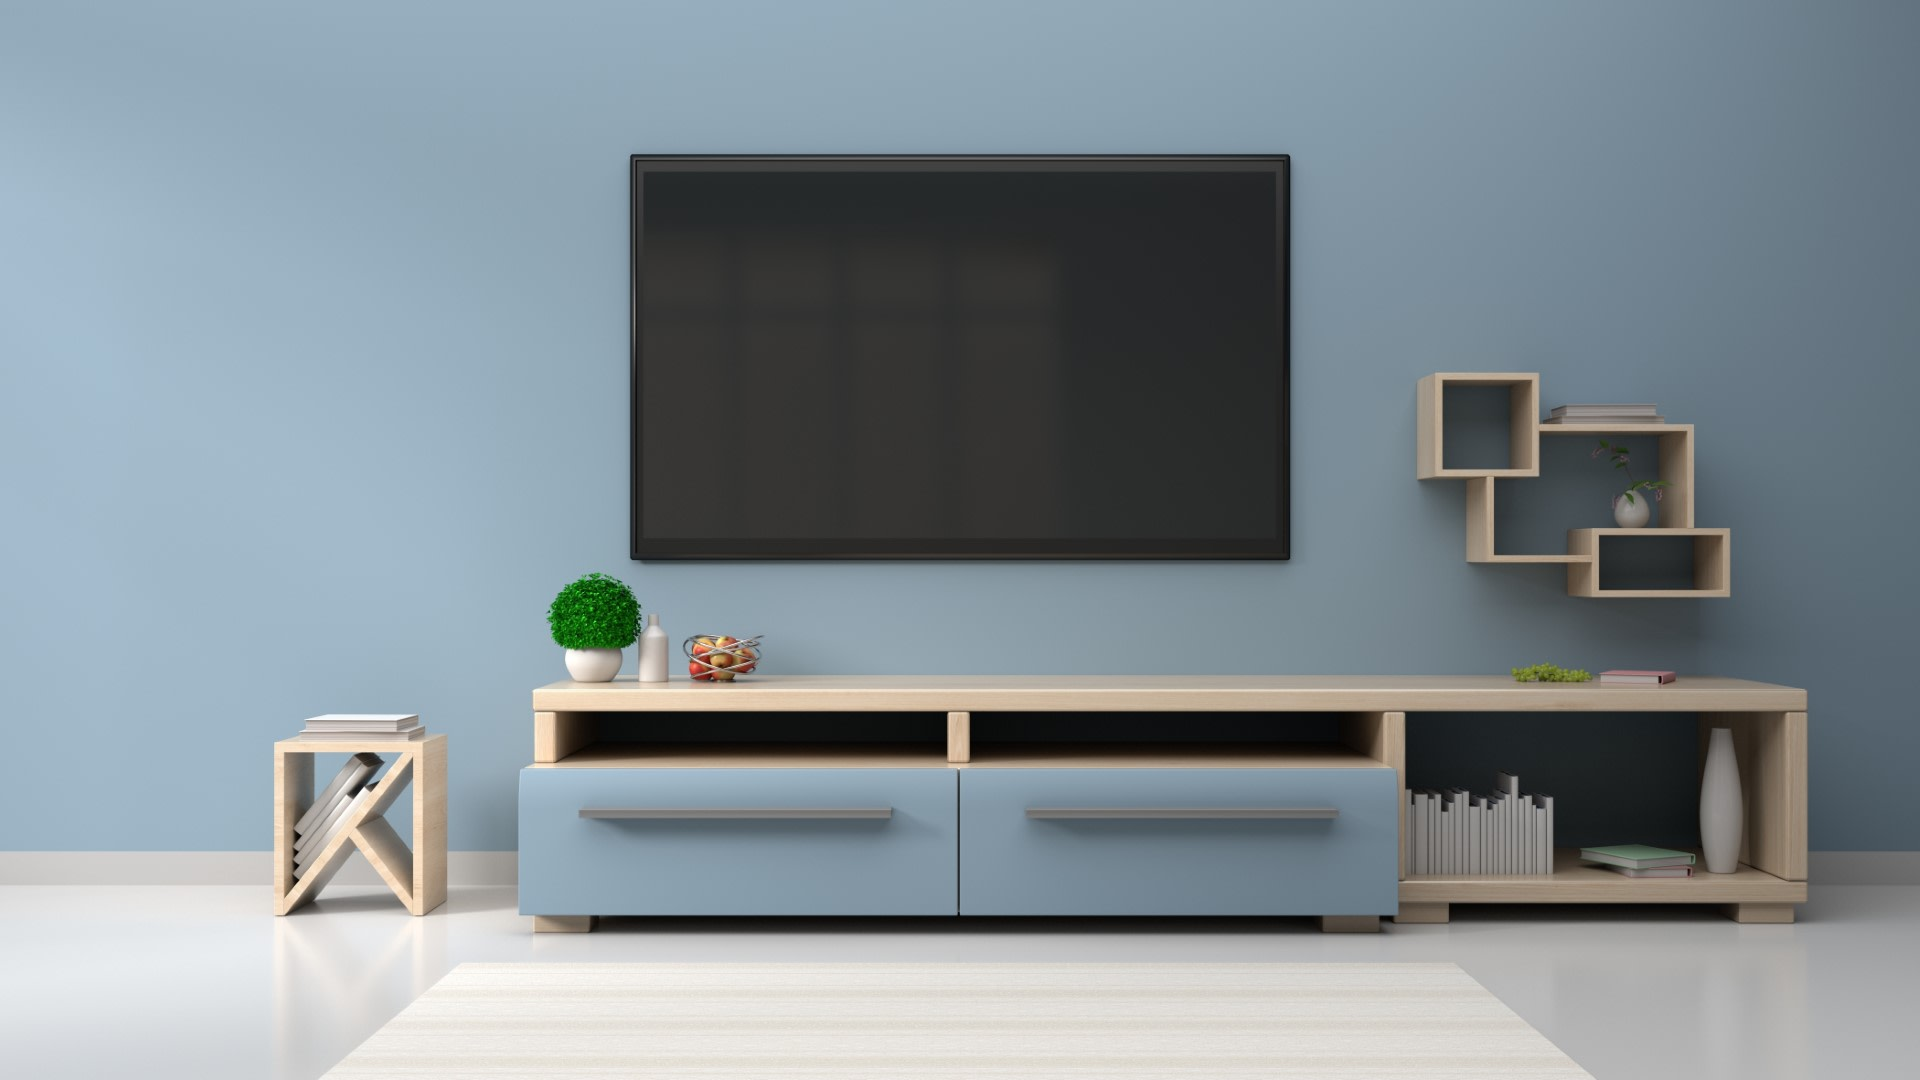 An image related to HD 120Hz TVs Review